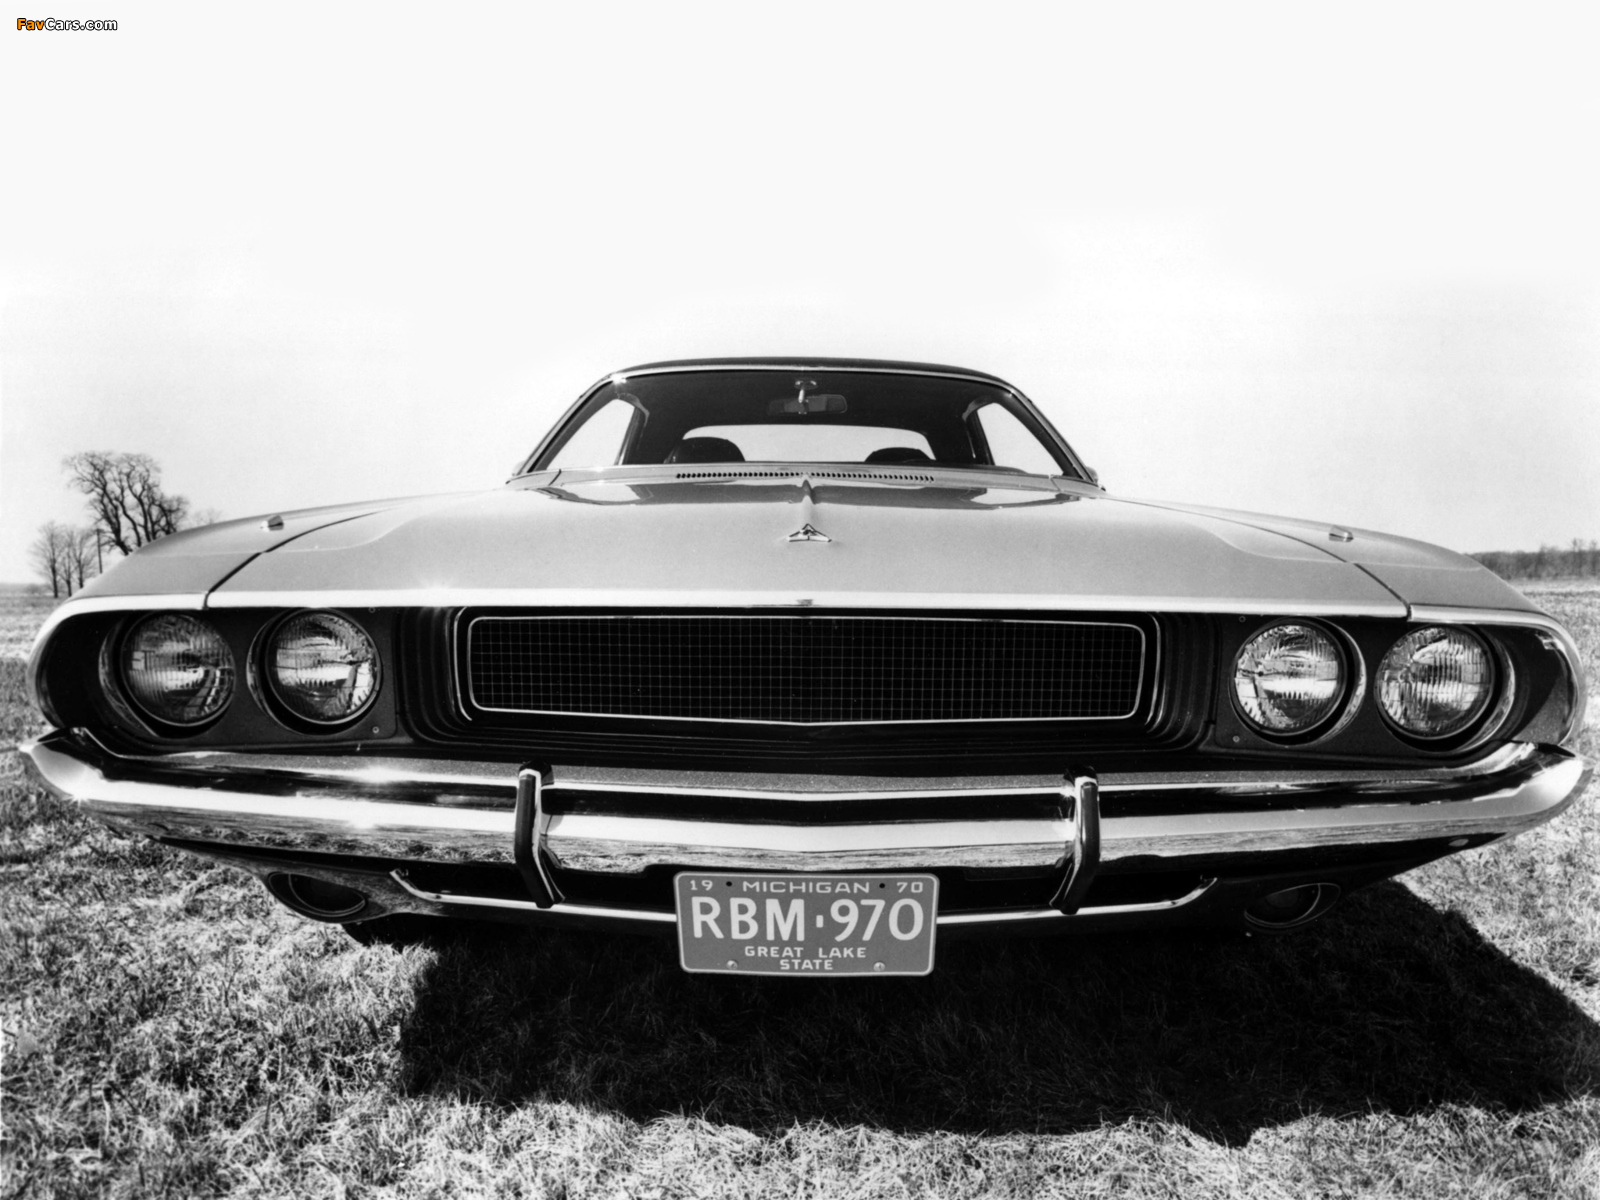 Dodge Challenger 1970 Wallpaper Dodge Challenger 1970 Wallpapers 1600x1200